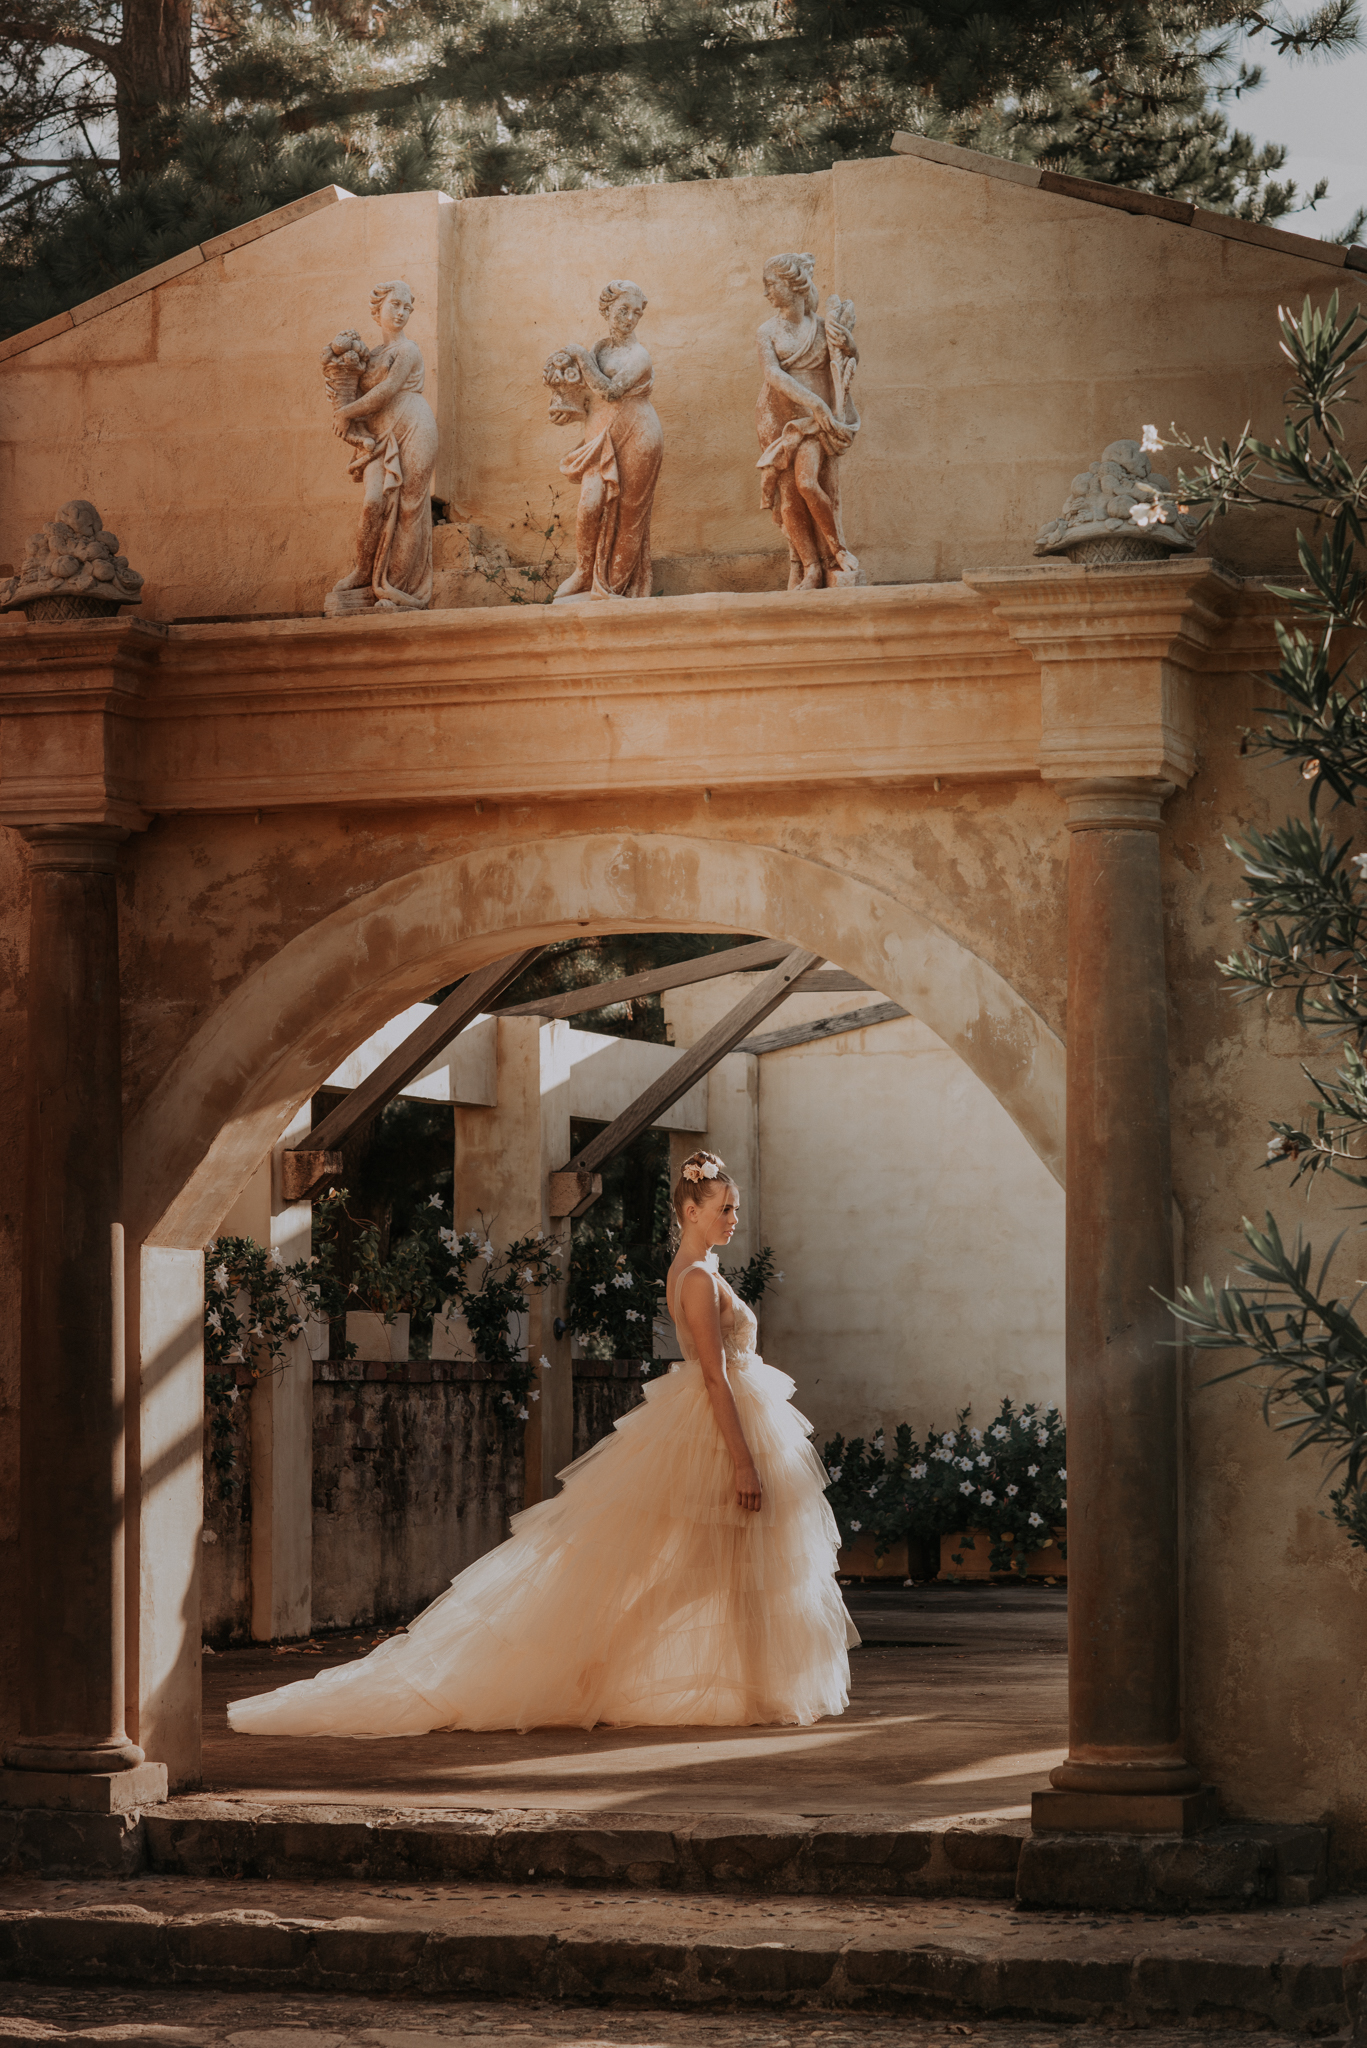 Lovelenscapes Photography X Ulyana Aster Bridal • Les Deux Belettes • Leigh McCoy • Bloodwood Botanica • Alena Iano • Alisa Rudnev • Demi Groot • Jessie Lockley • Maddison Ruby • 100.jpg